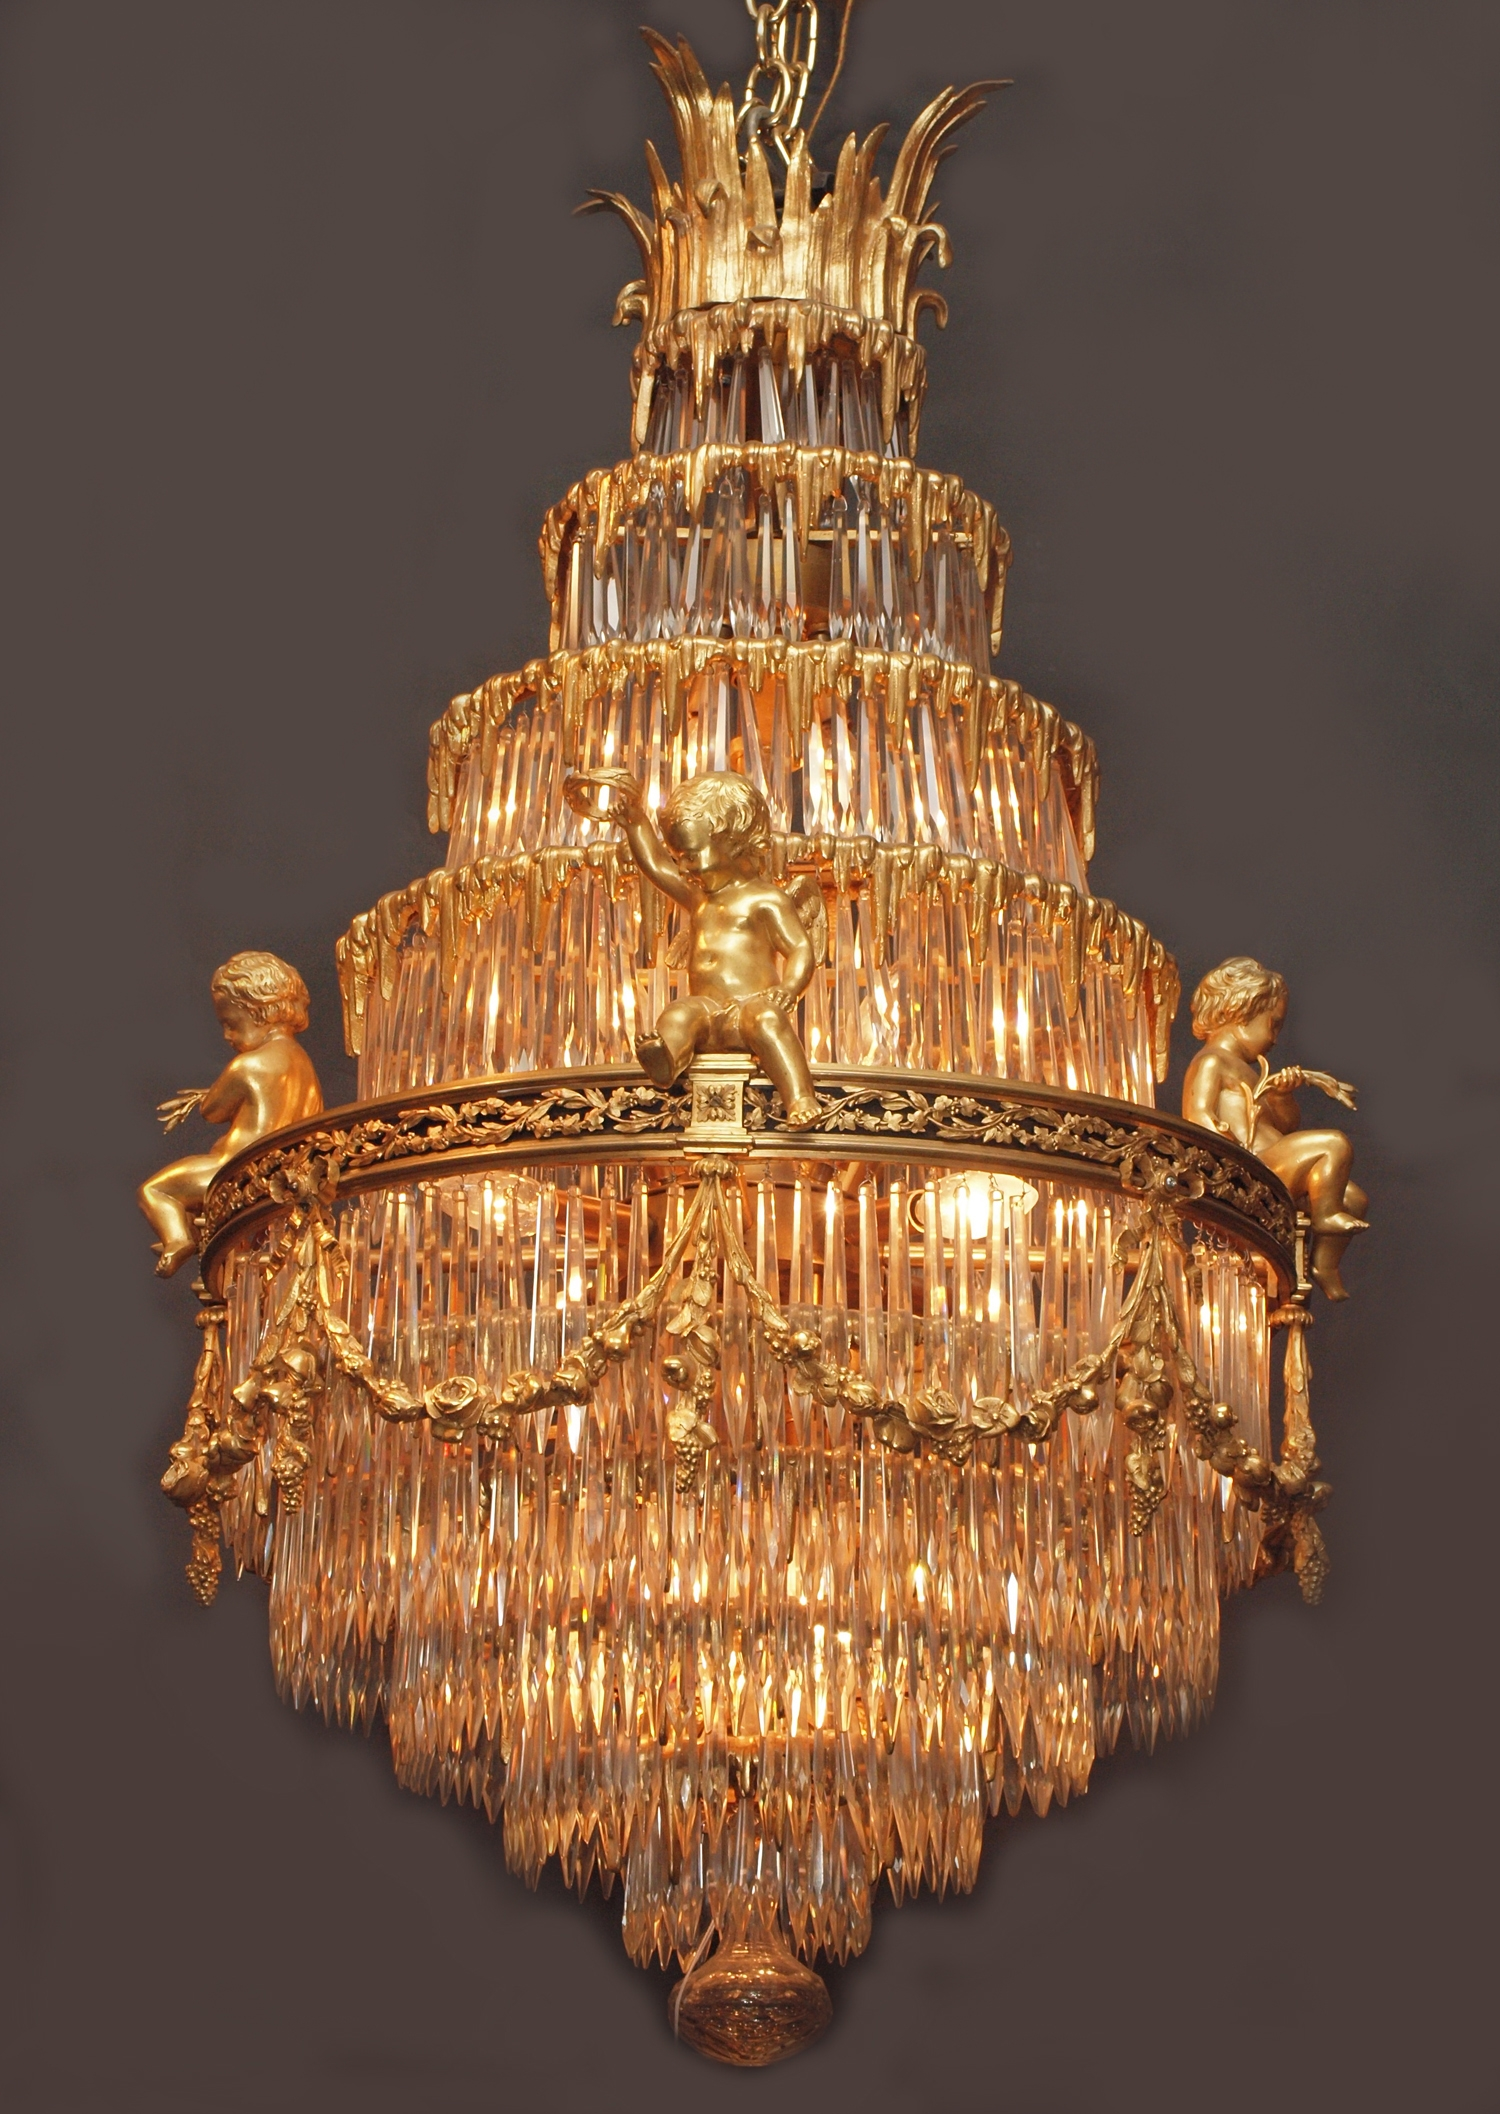 Antiques Classifieds Antiques Antique Lamps And Lighting Inside Antique Chandeliers (#7 of 12)